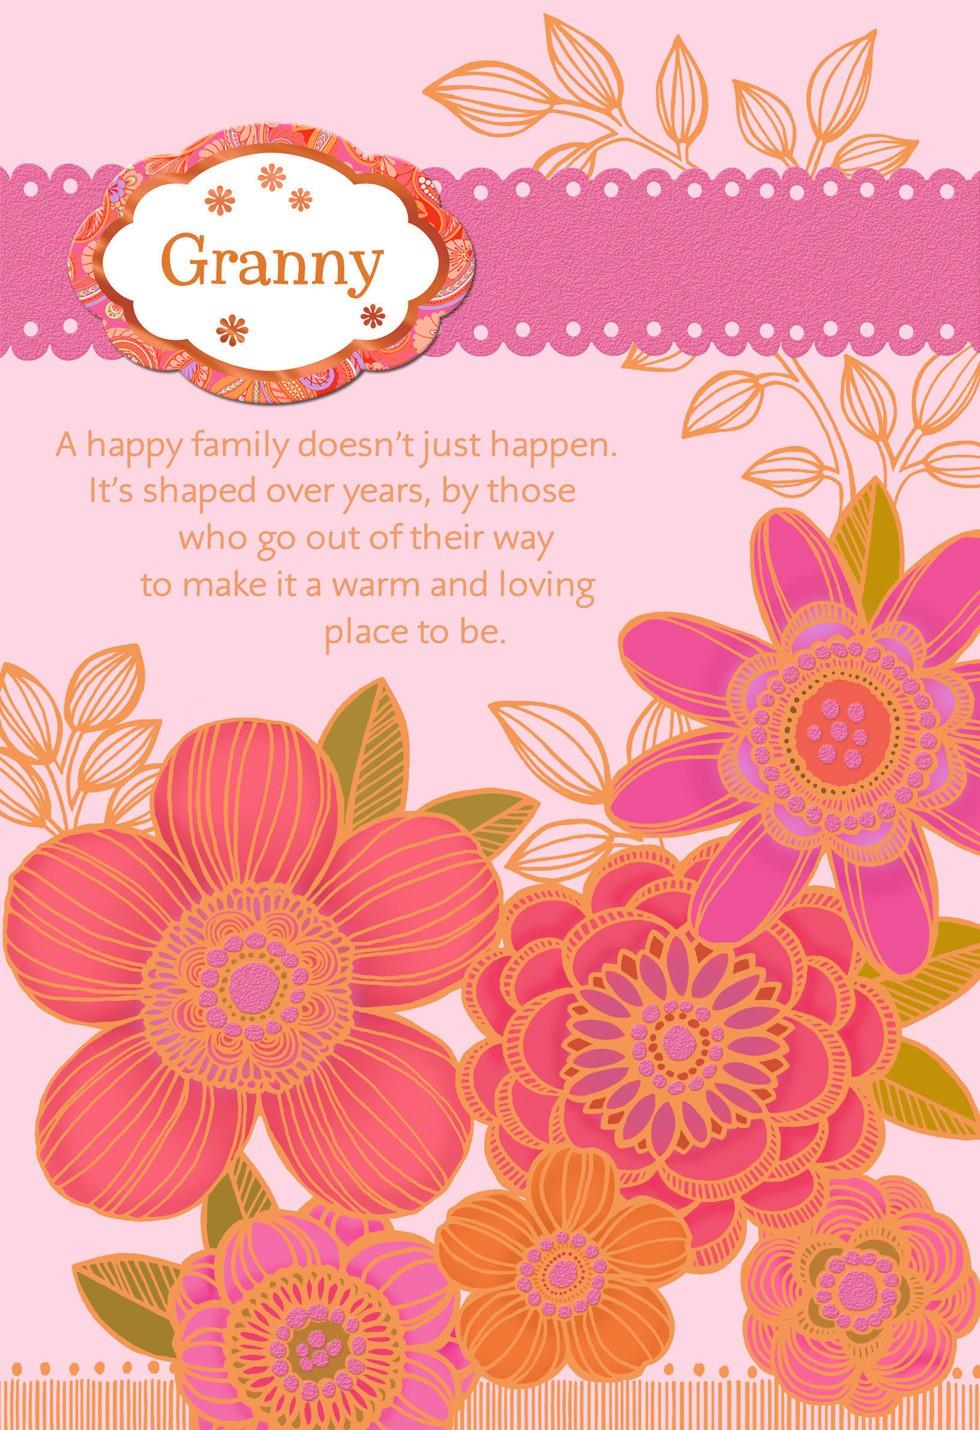 birthday card stickers ; special-names-for-grandma-birthday-card-with-personalization-stickers-root-399fbd5142_1470_1